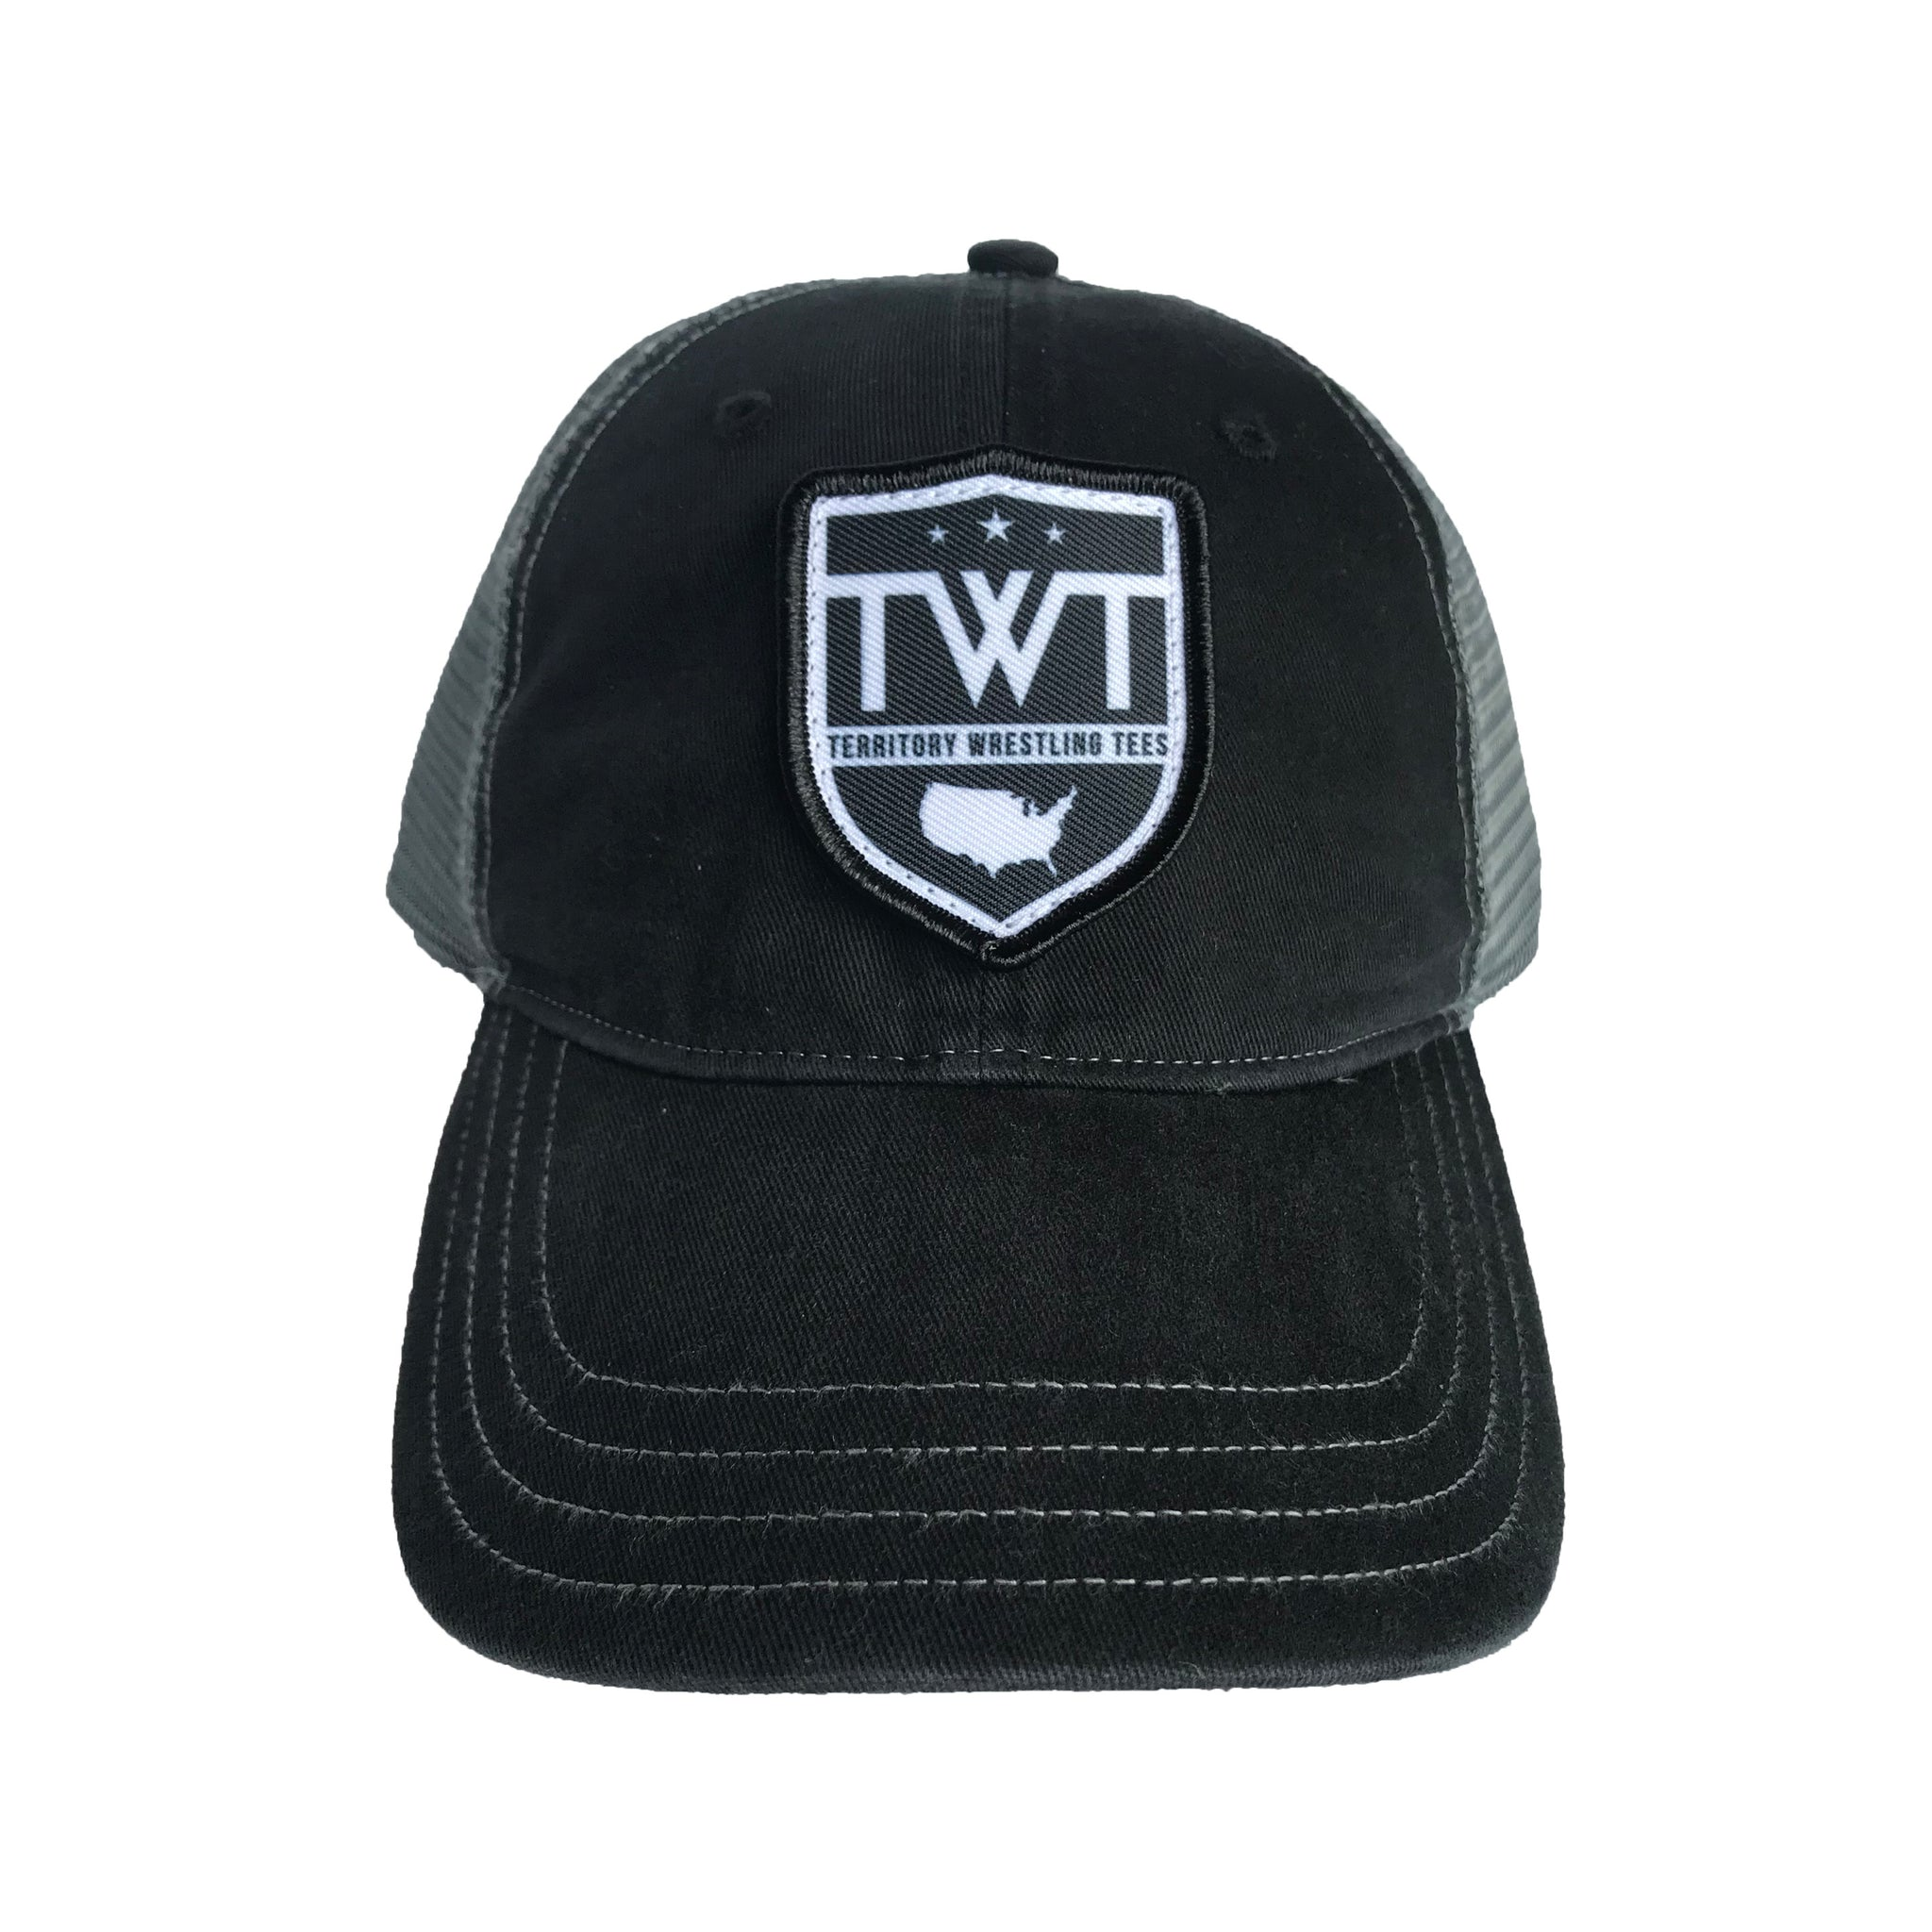 TWT Unstructured Trucker Hat - Black/Charcoal